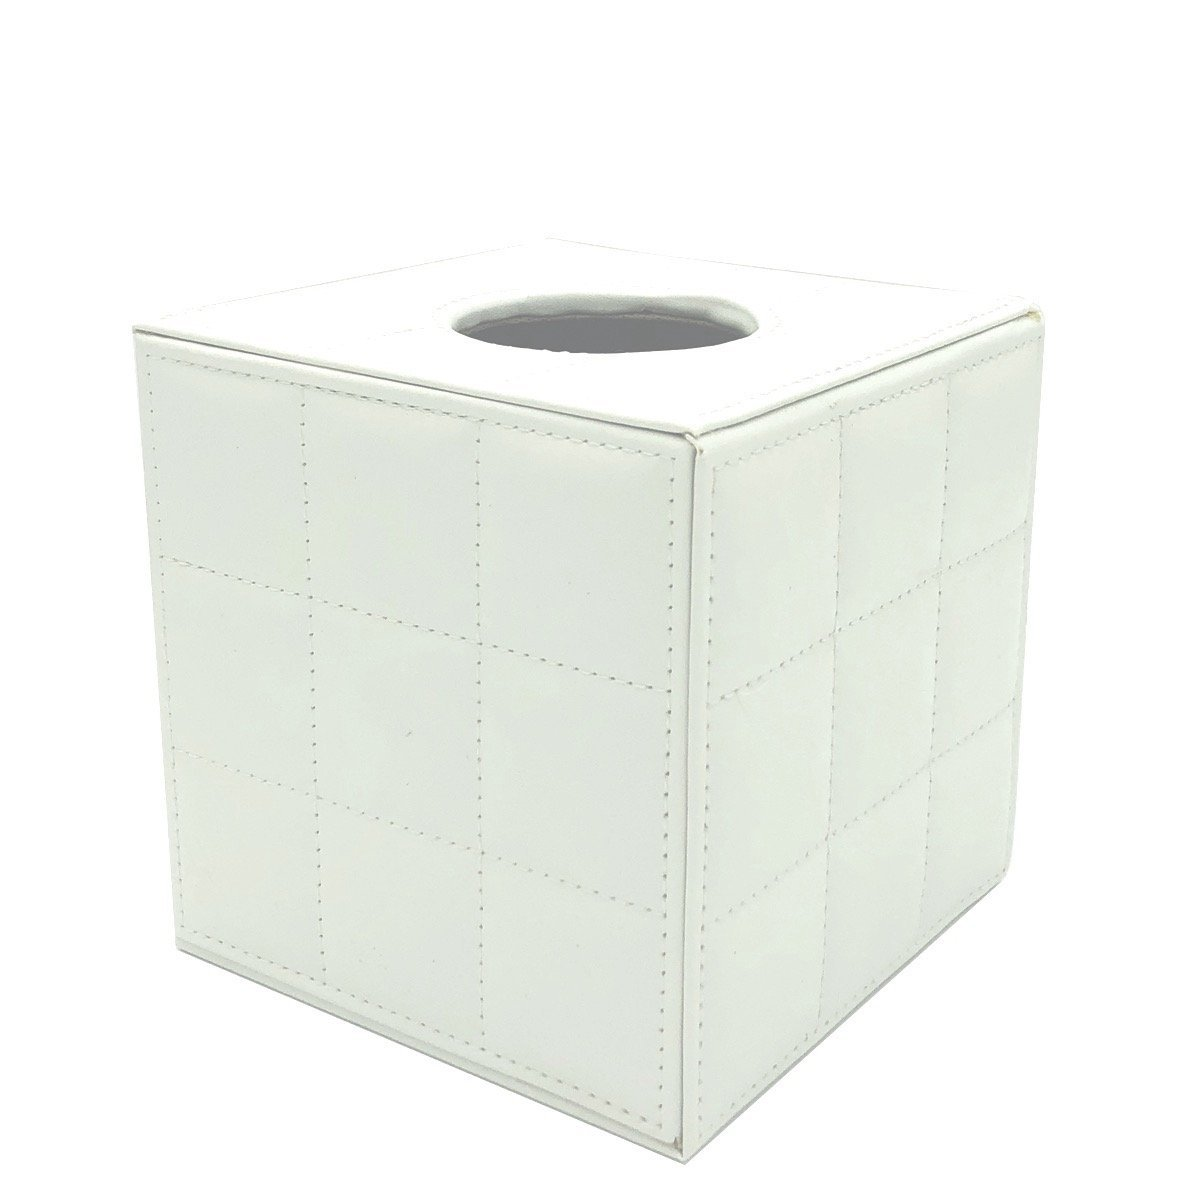 UnionBasic Square Roll Tissue & Napkin Holder Box Cover Pumping for Home Office Car Automotive - Faux Leather (Plaid White)